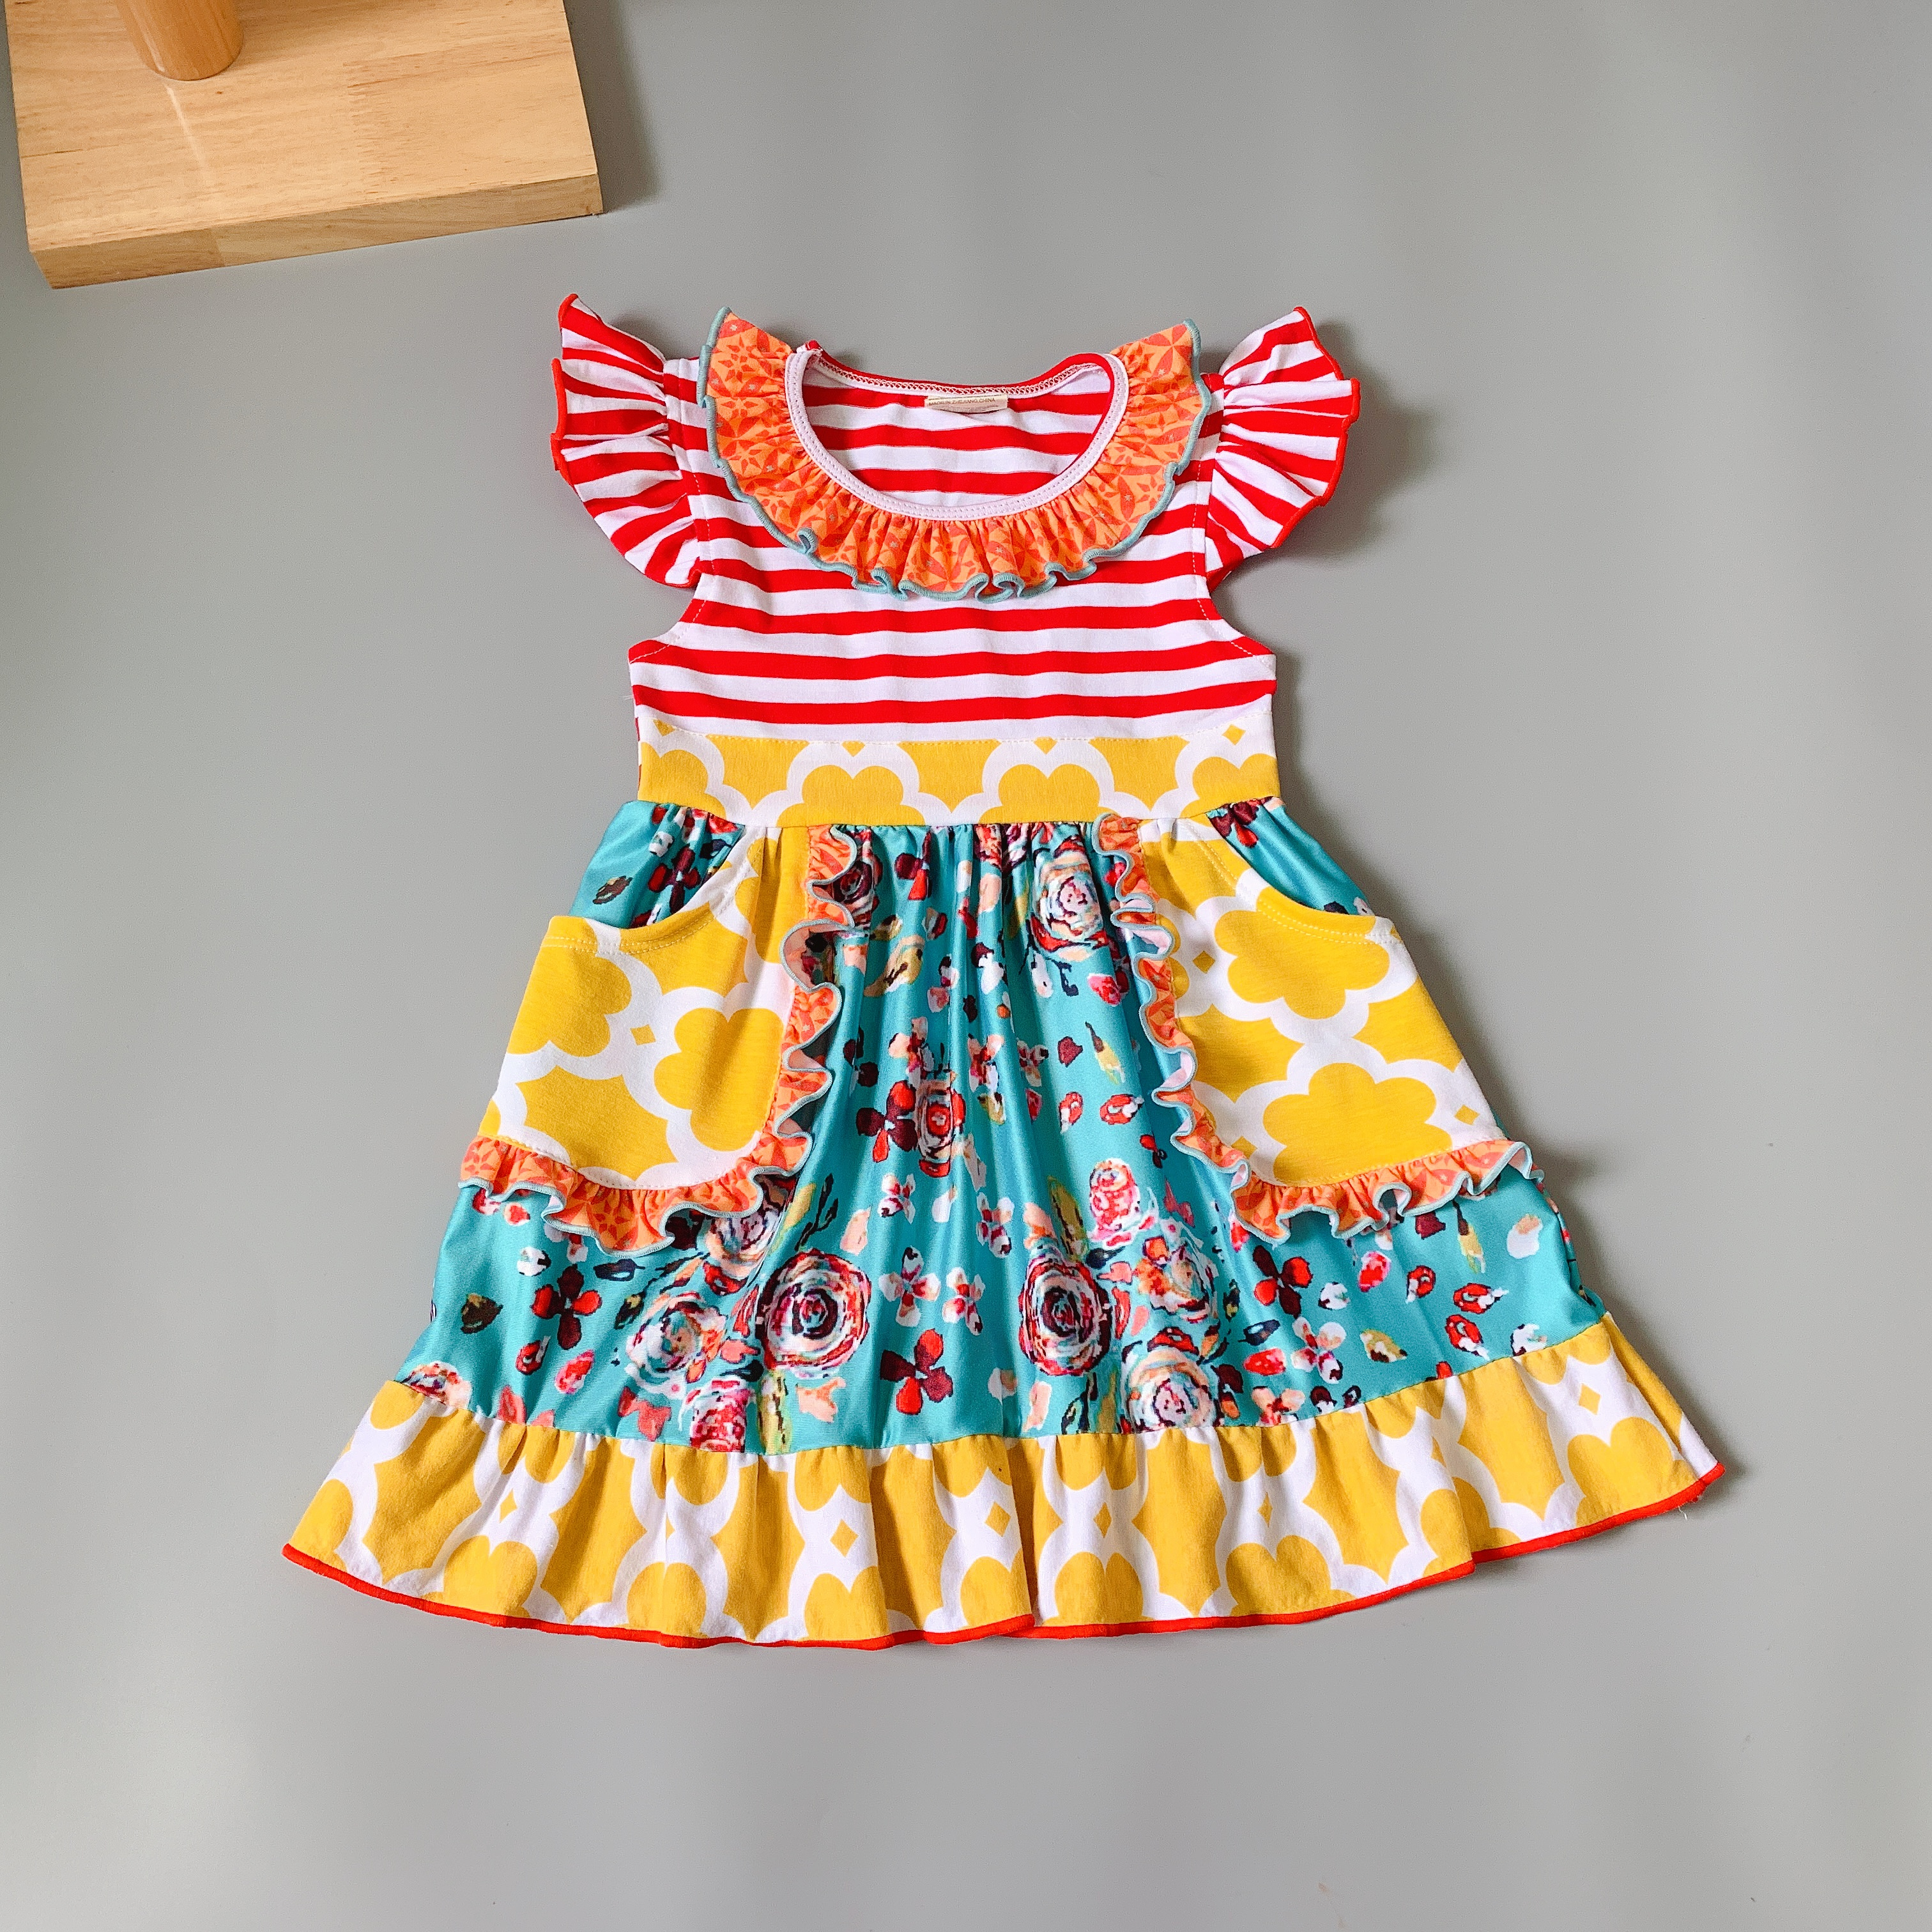 Summer Clothing with Children Multicolour Printed Baby Girls Dress for party present Cow dress Стёганое полотно